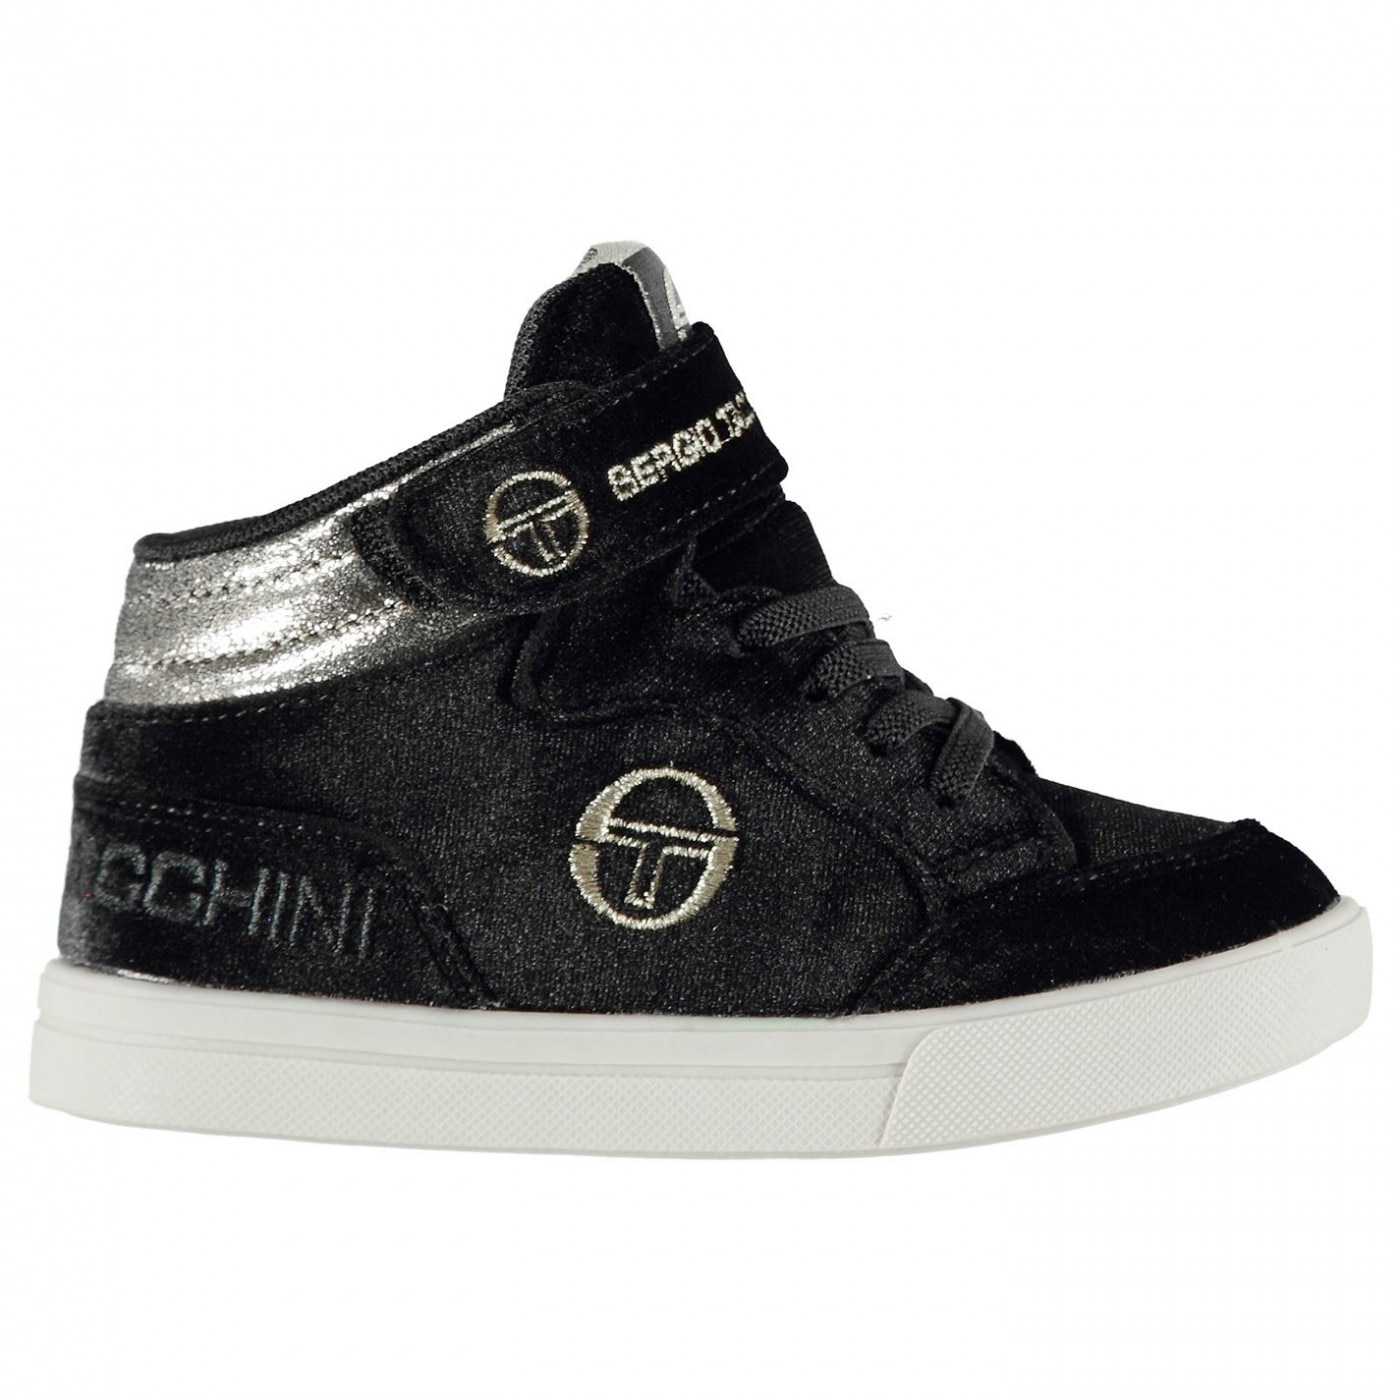 Sergio Tacchini Base Velvet Infants Hi Tops